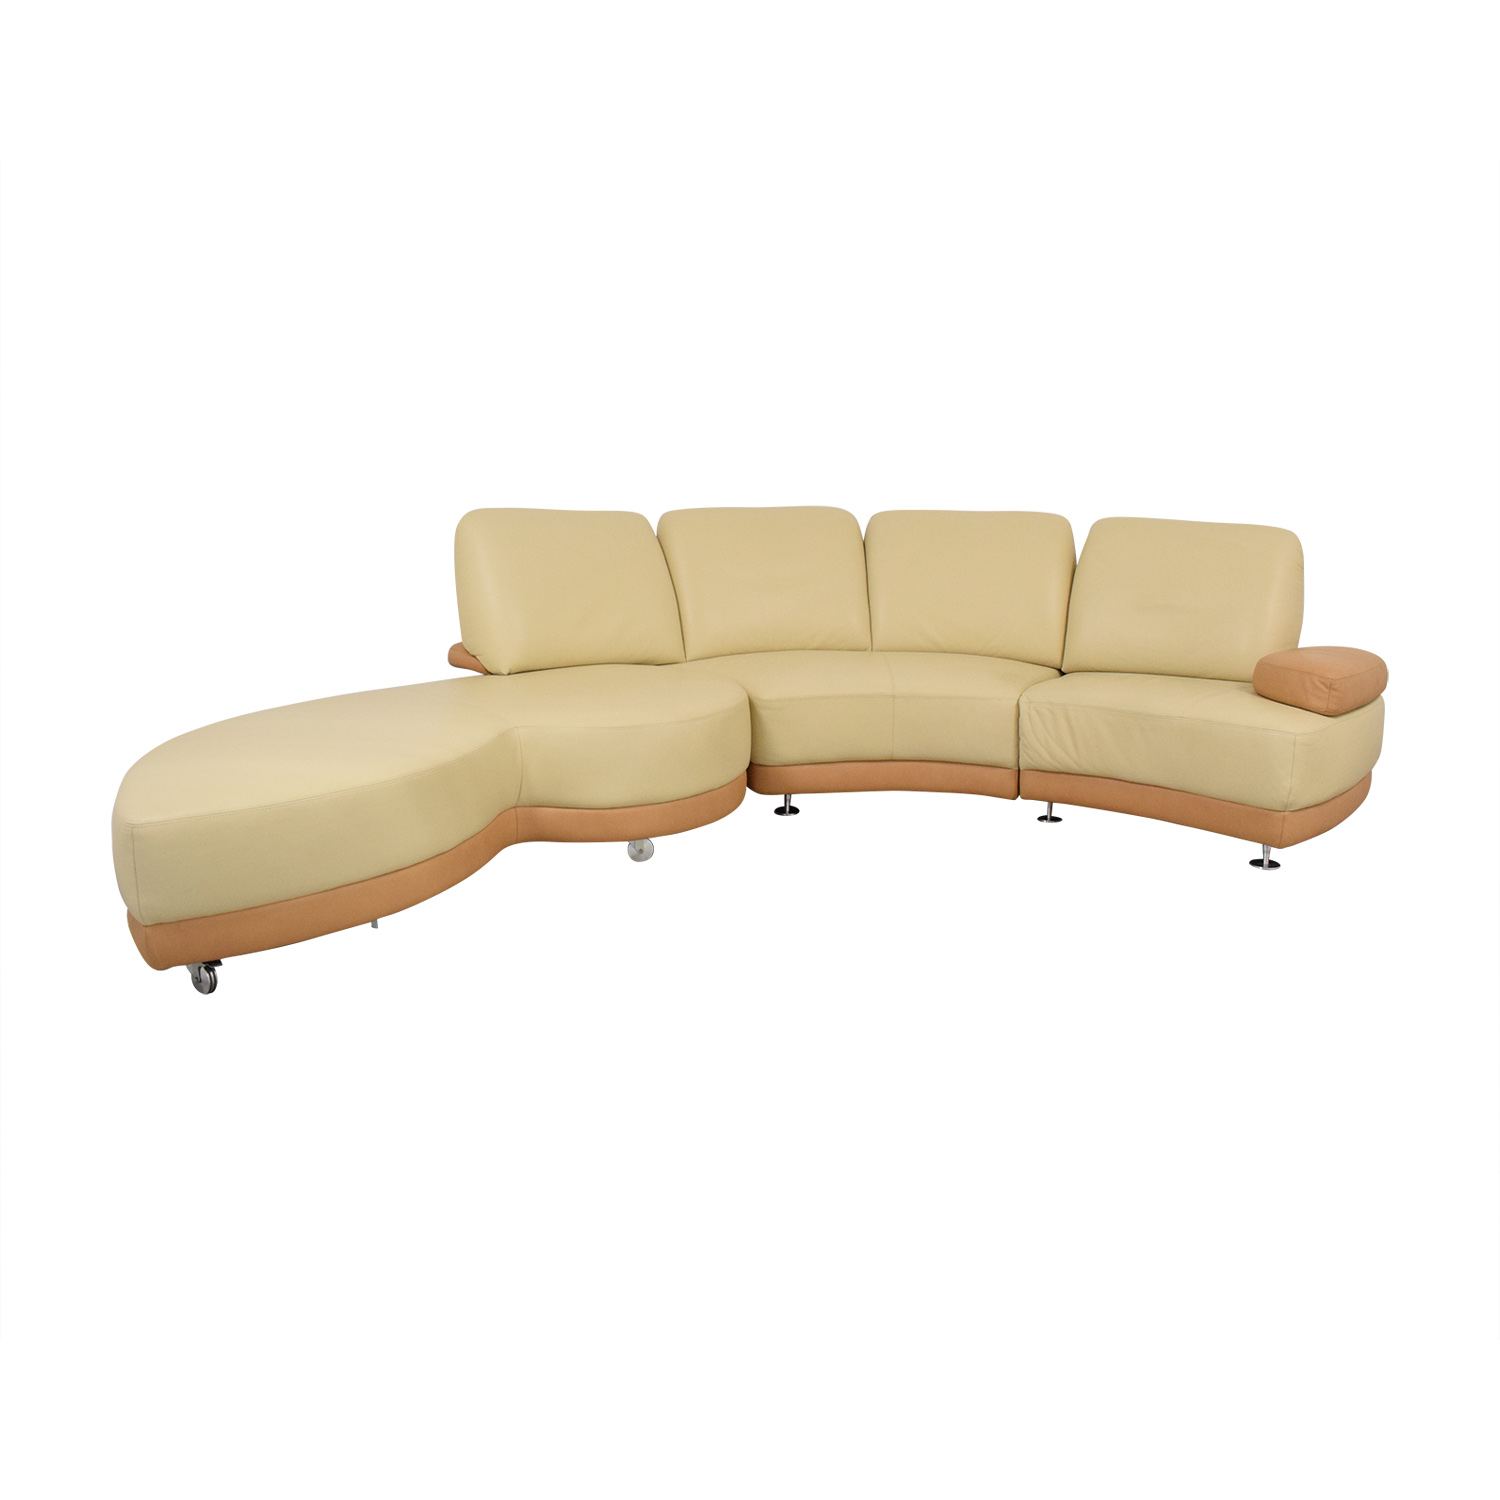 W. Schillig W. Schillig Crescent Shaped Sectional Sofa price